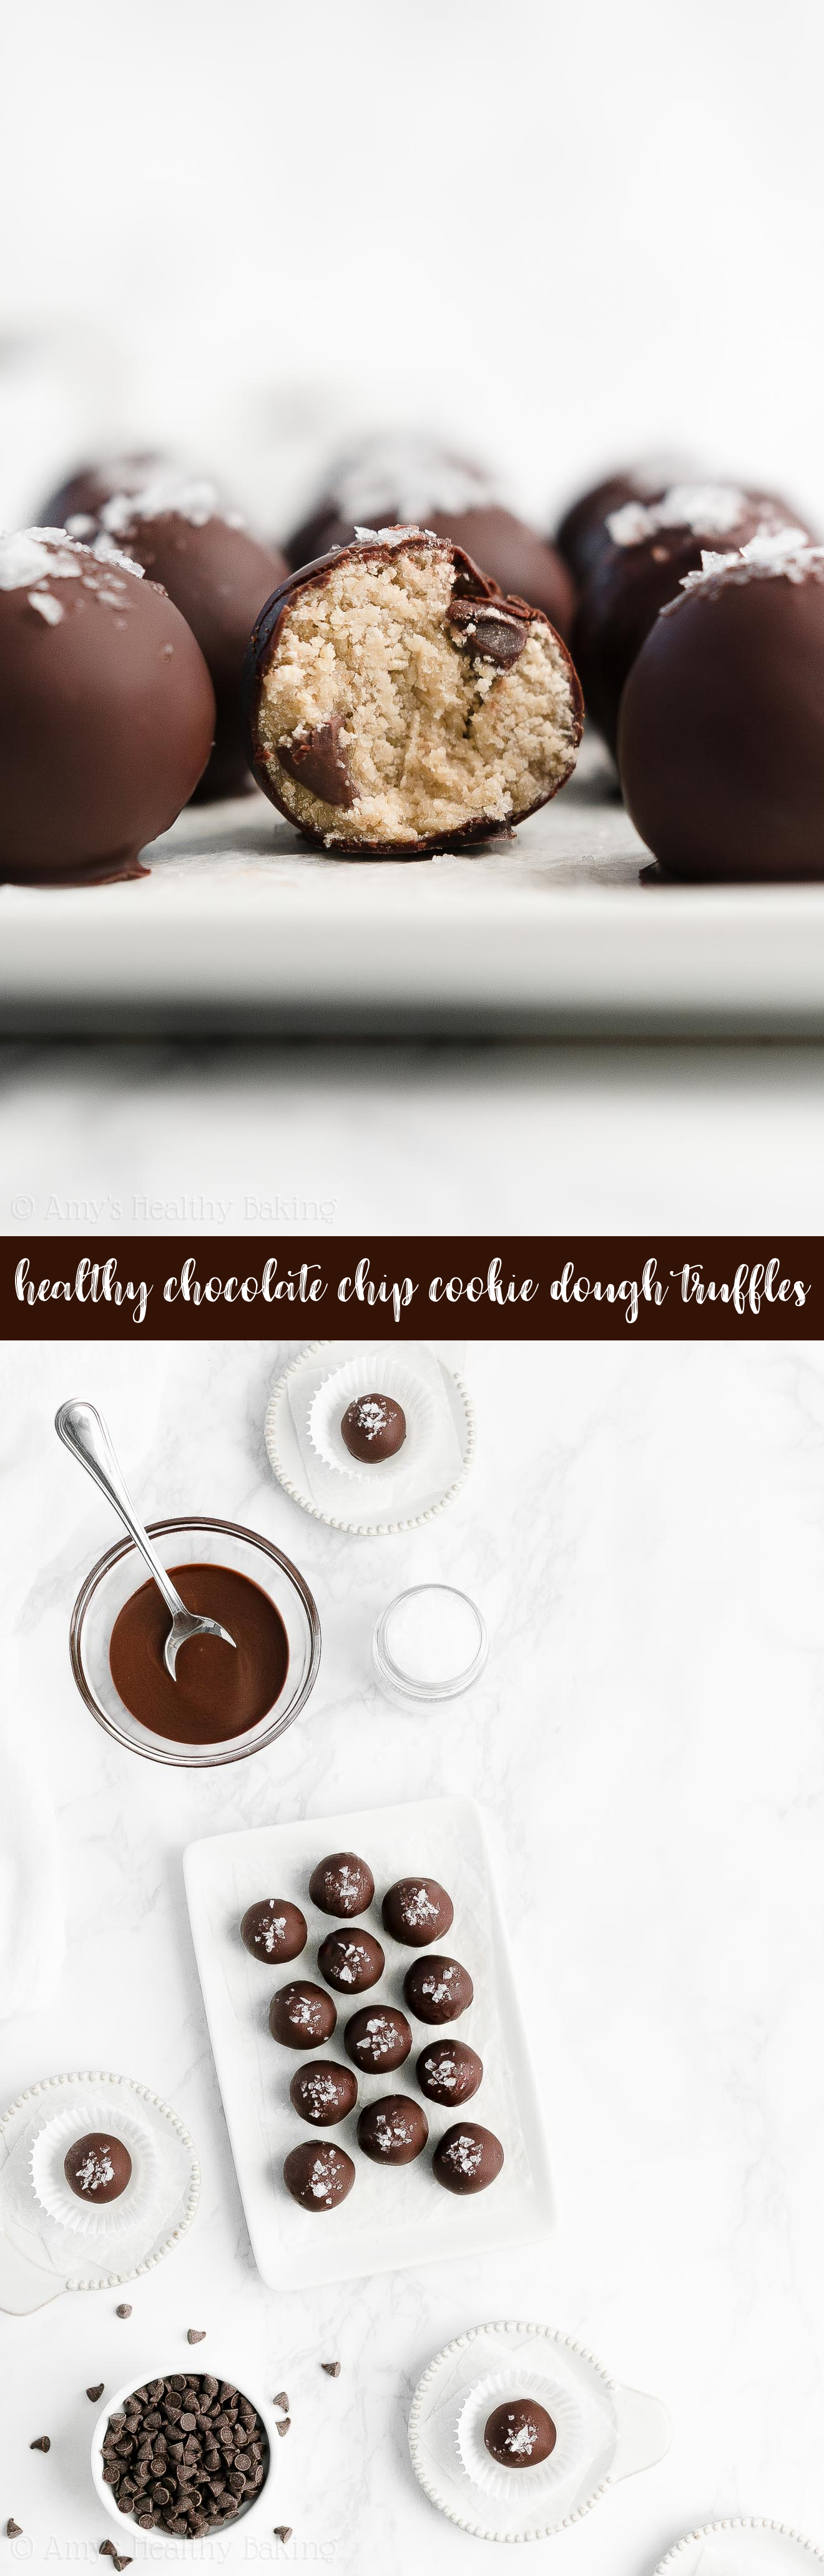 Best Ever Healthy Gluten Free Vegan Eggless Chocolate Chip Cookie Dough Truffles